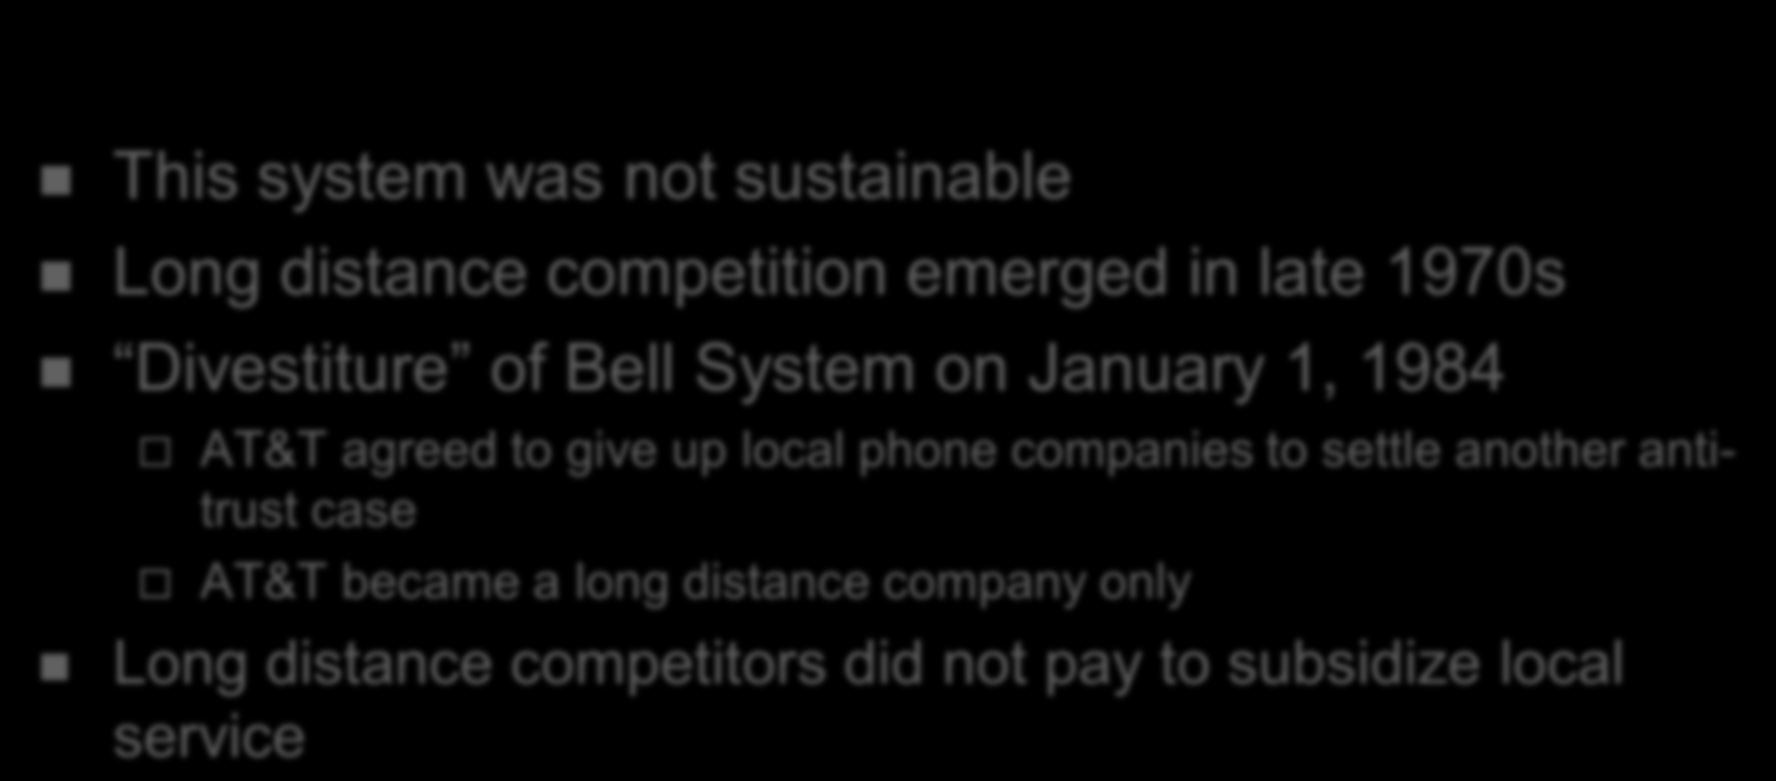 History of Universal Service in the USA This system was not sustainable Long distance competition emerged in late 1970s Divestiture of Bell System on January 1, 1984 AT&T